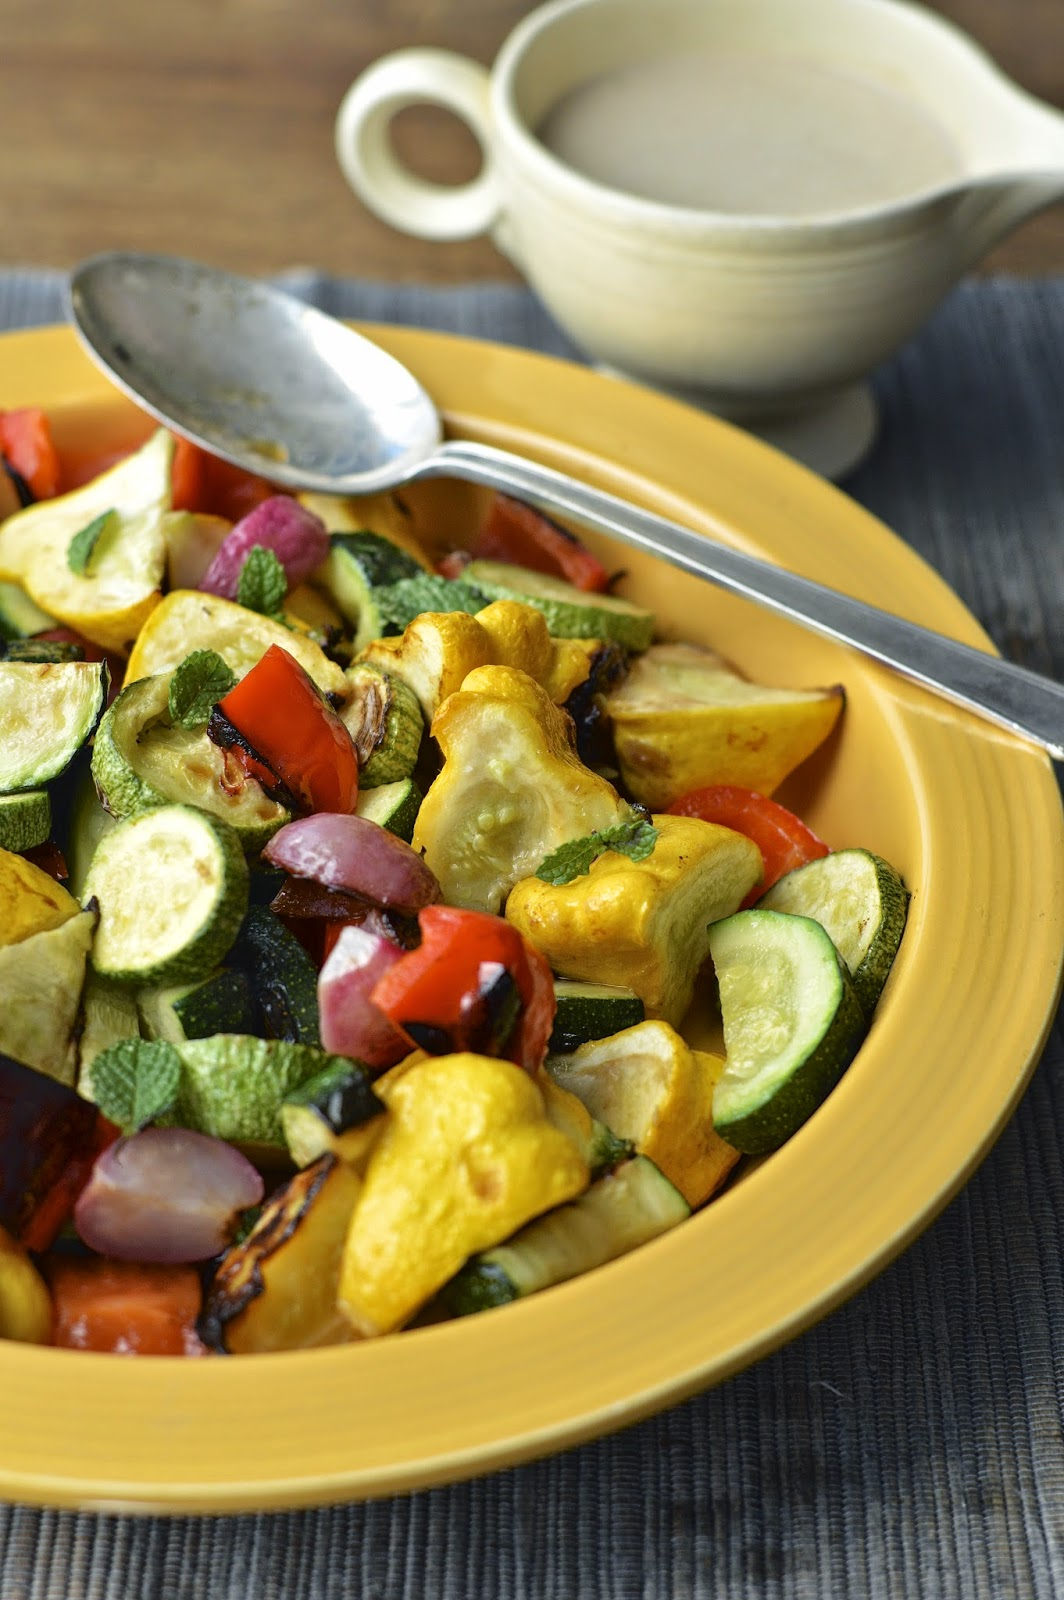 Summer veggies roasted on the grill and drizzled with a smokey lemon tahini dressing